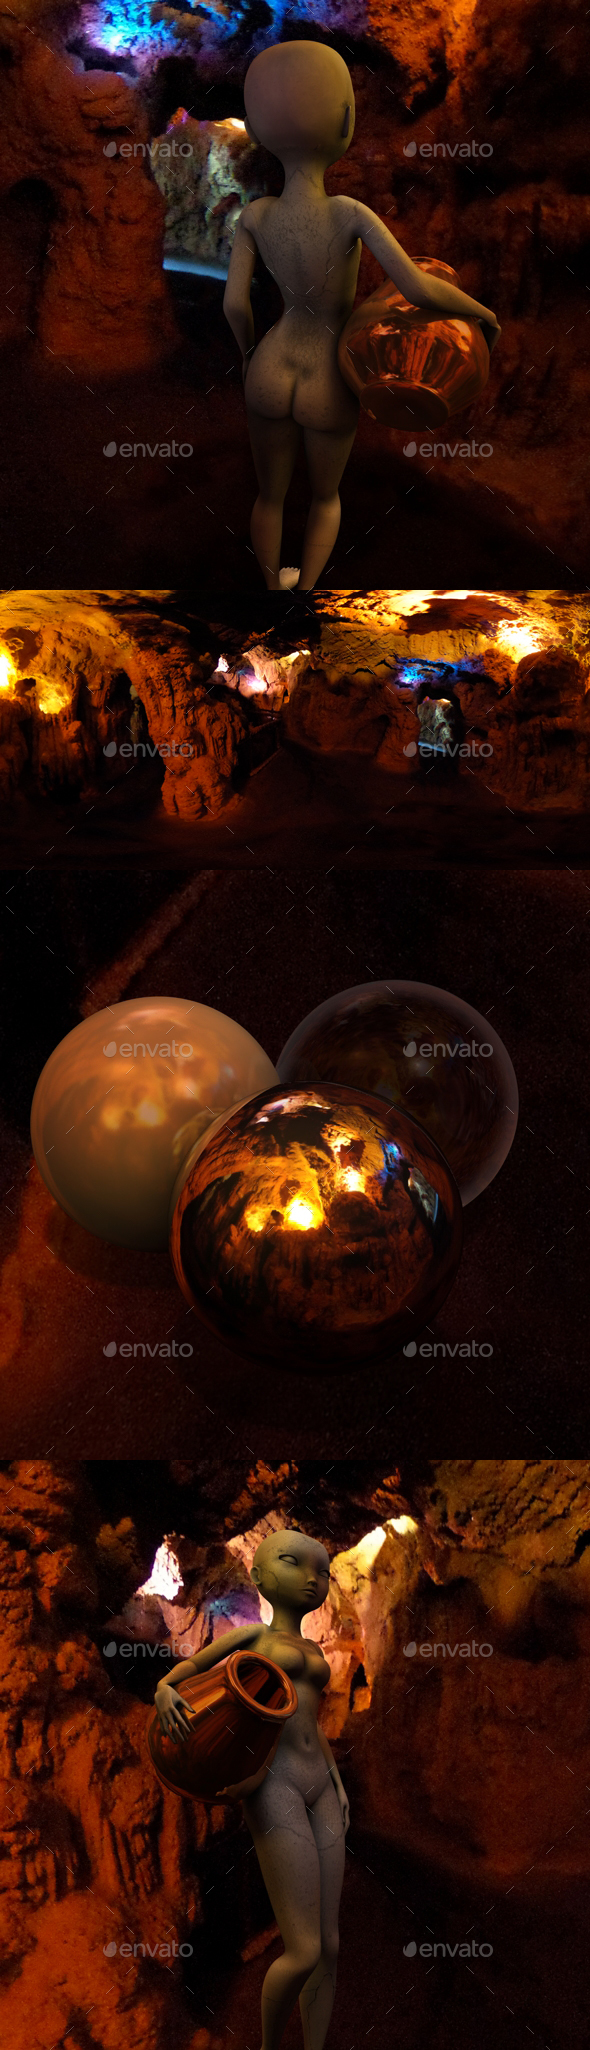 Dark Orange Cave HDRI - 3DOcean Item for Sale